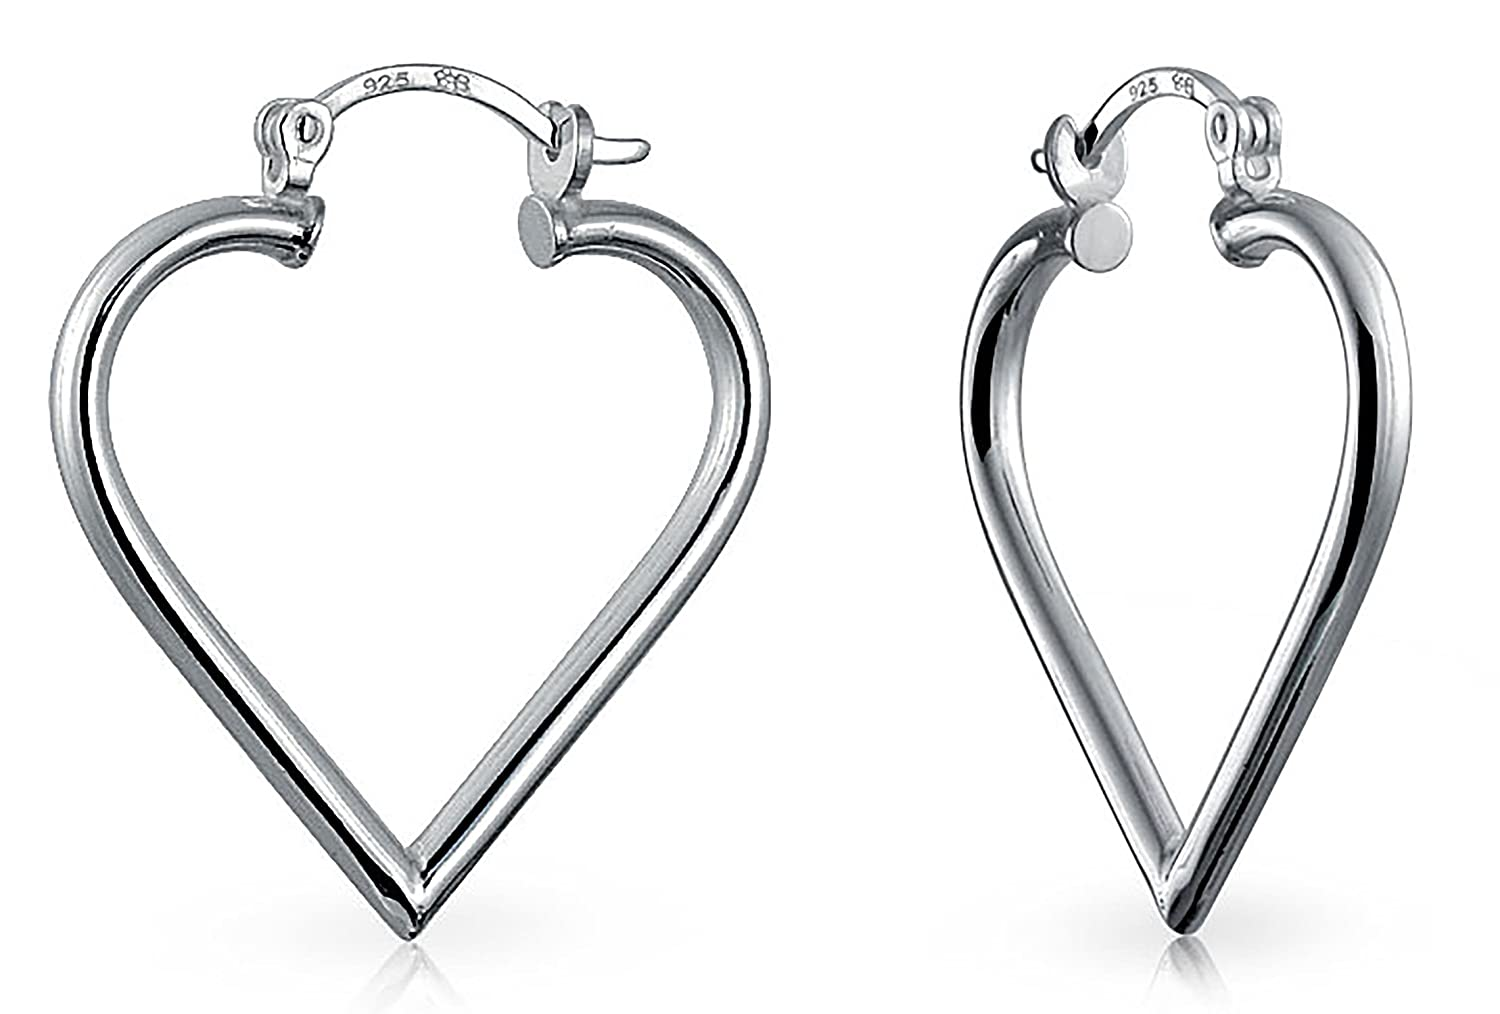 Open Top Heart Love Hoop Earrings Tubular 925 Sterling Silver Hinged Notched Post Bling Jewelry APPL-6S-75652